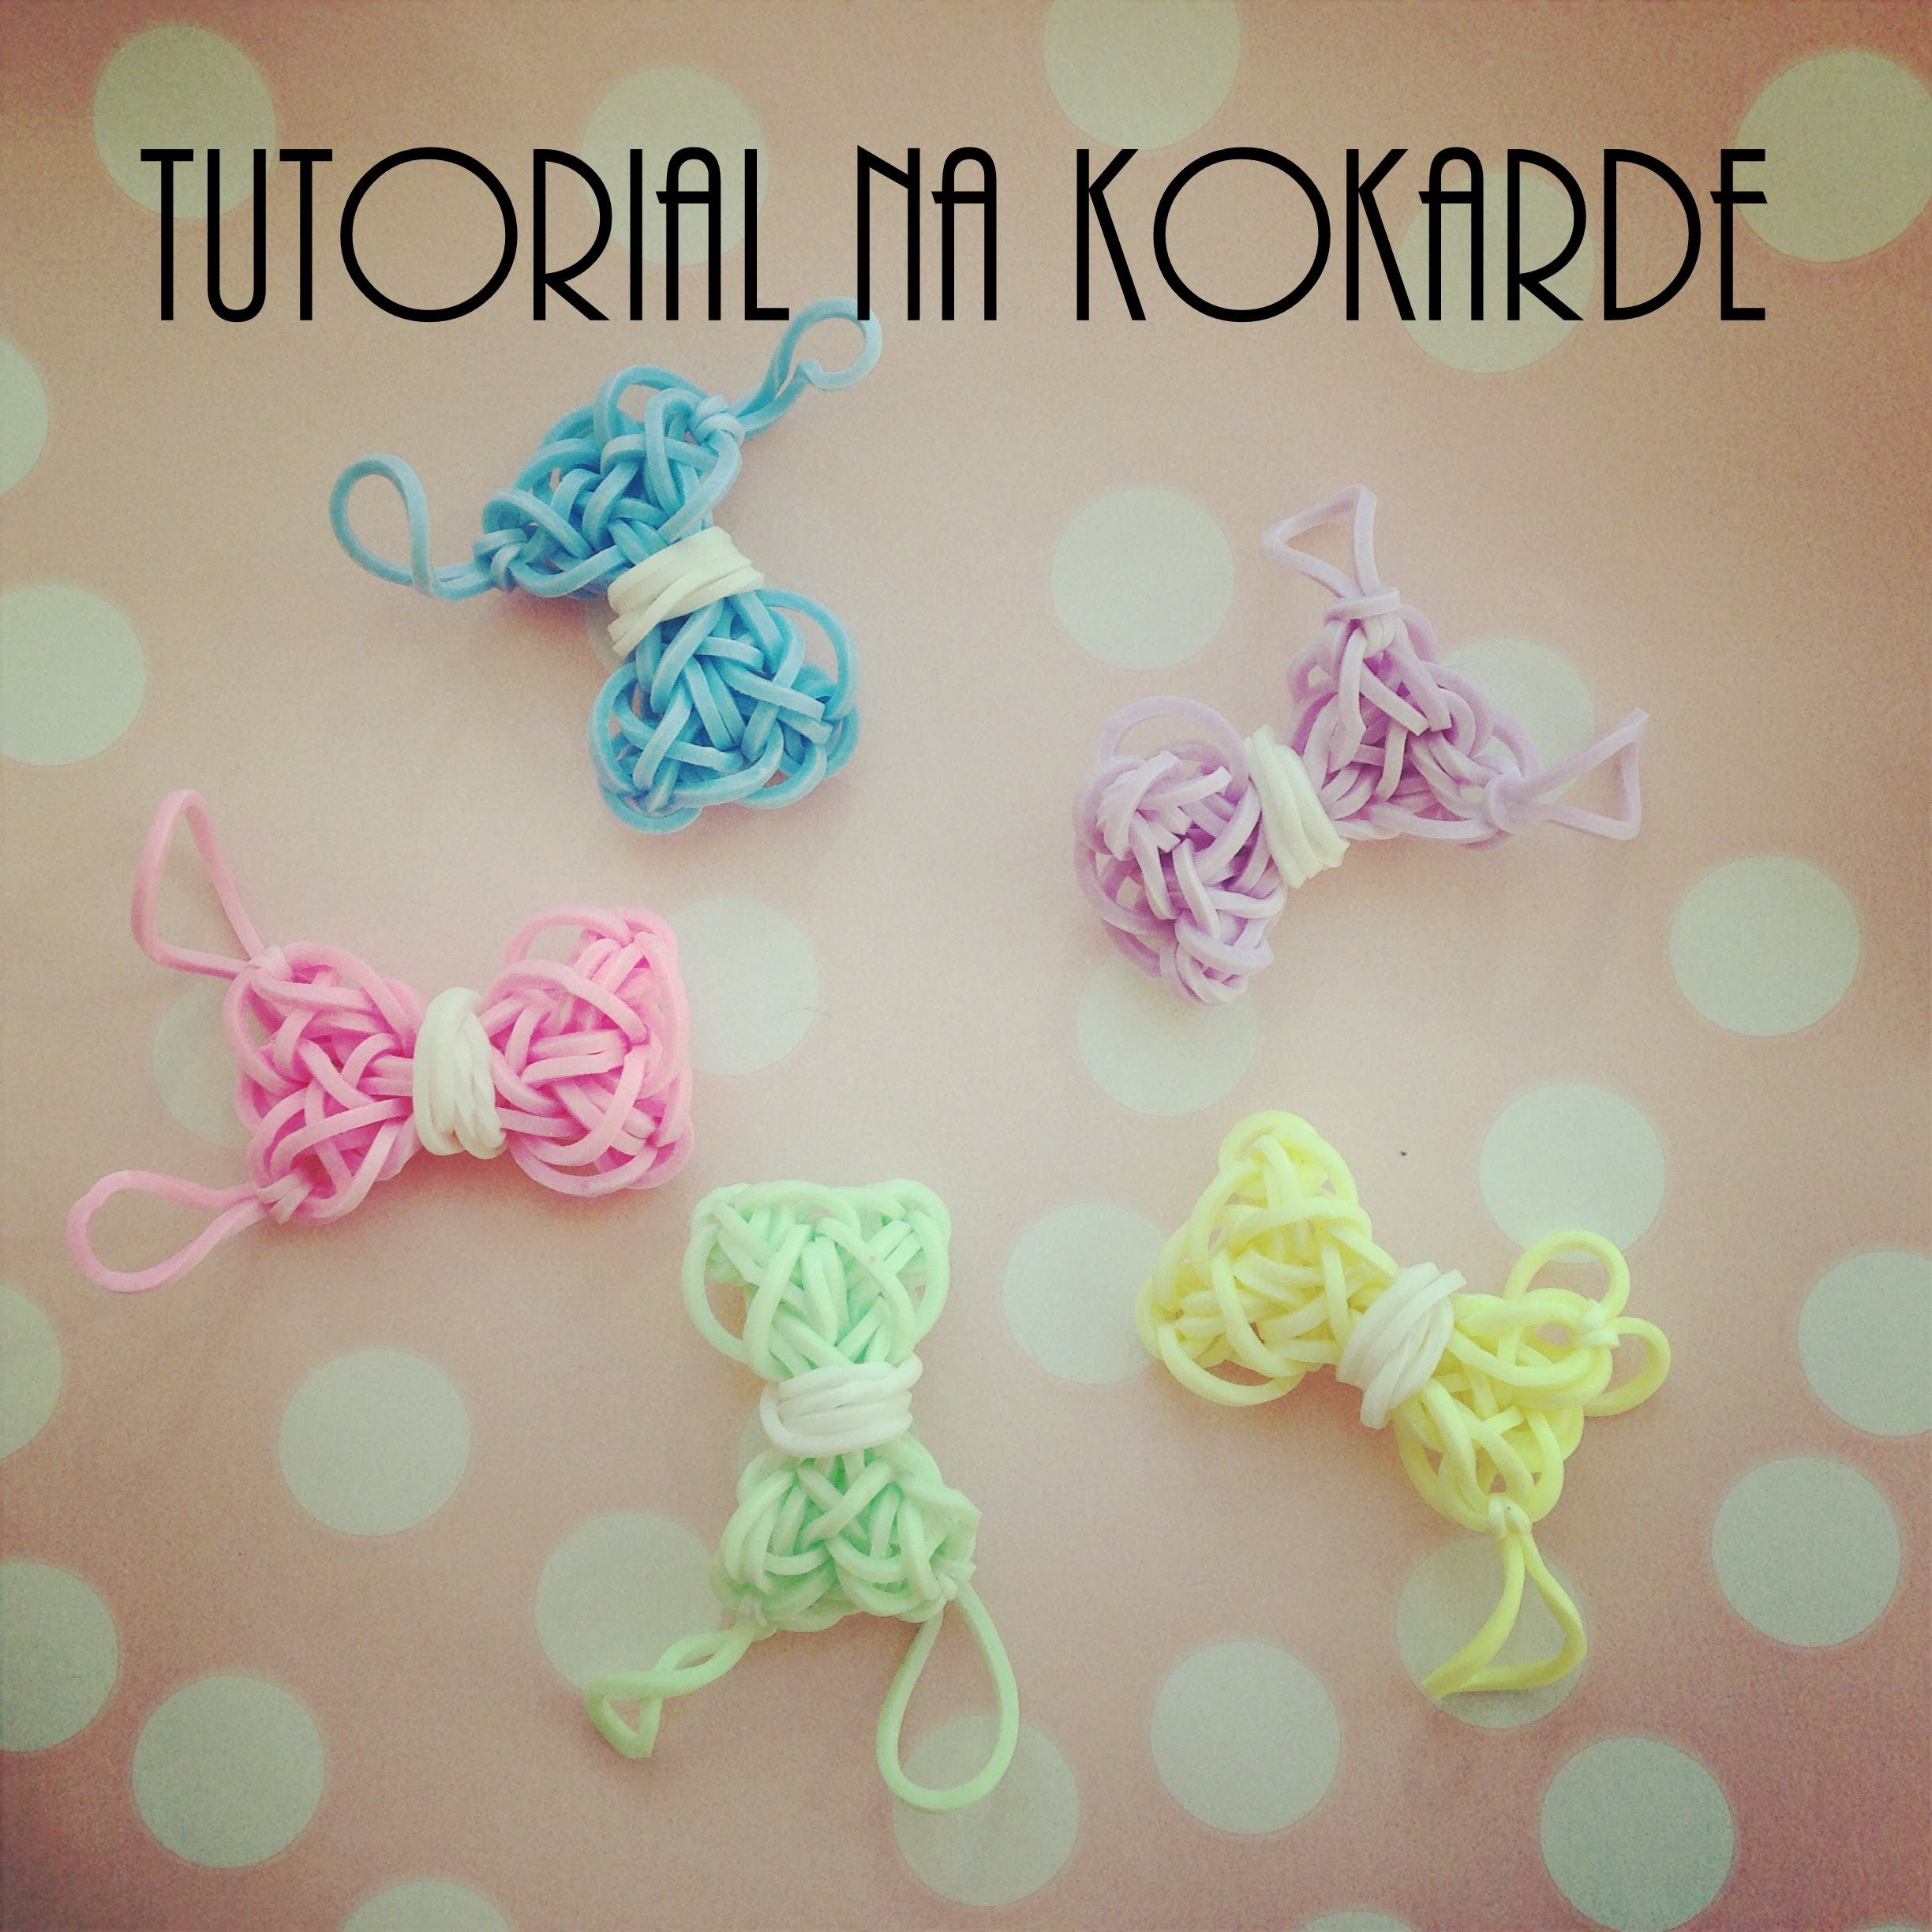 Tutorial na kokarde - Rainbow Loom